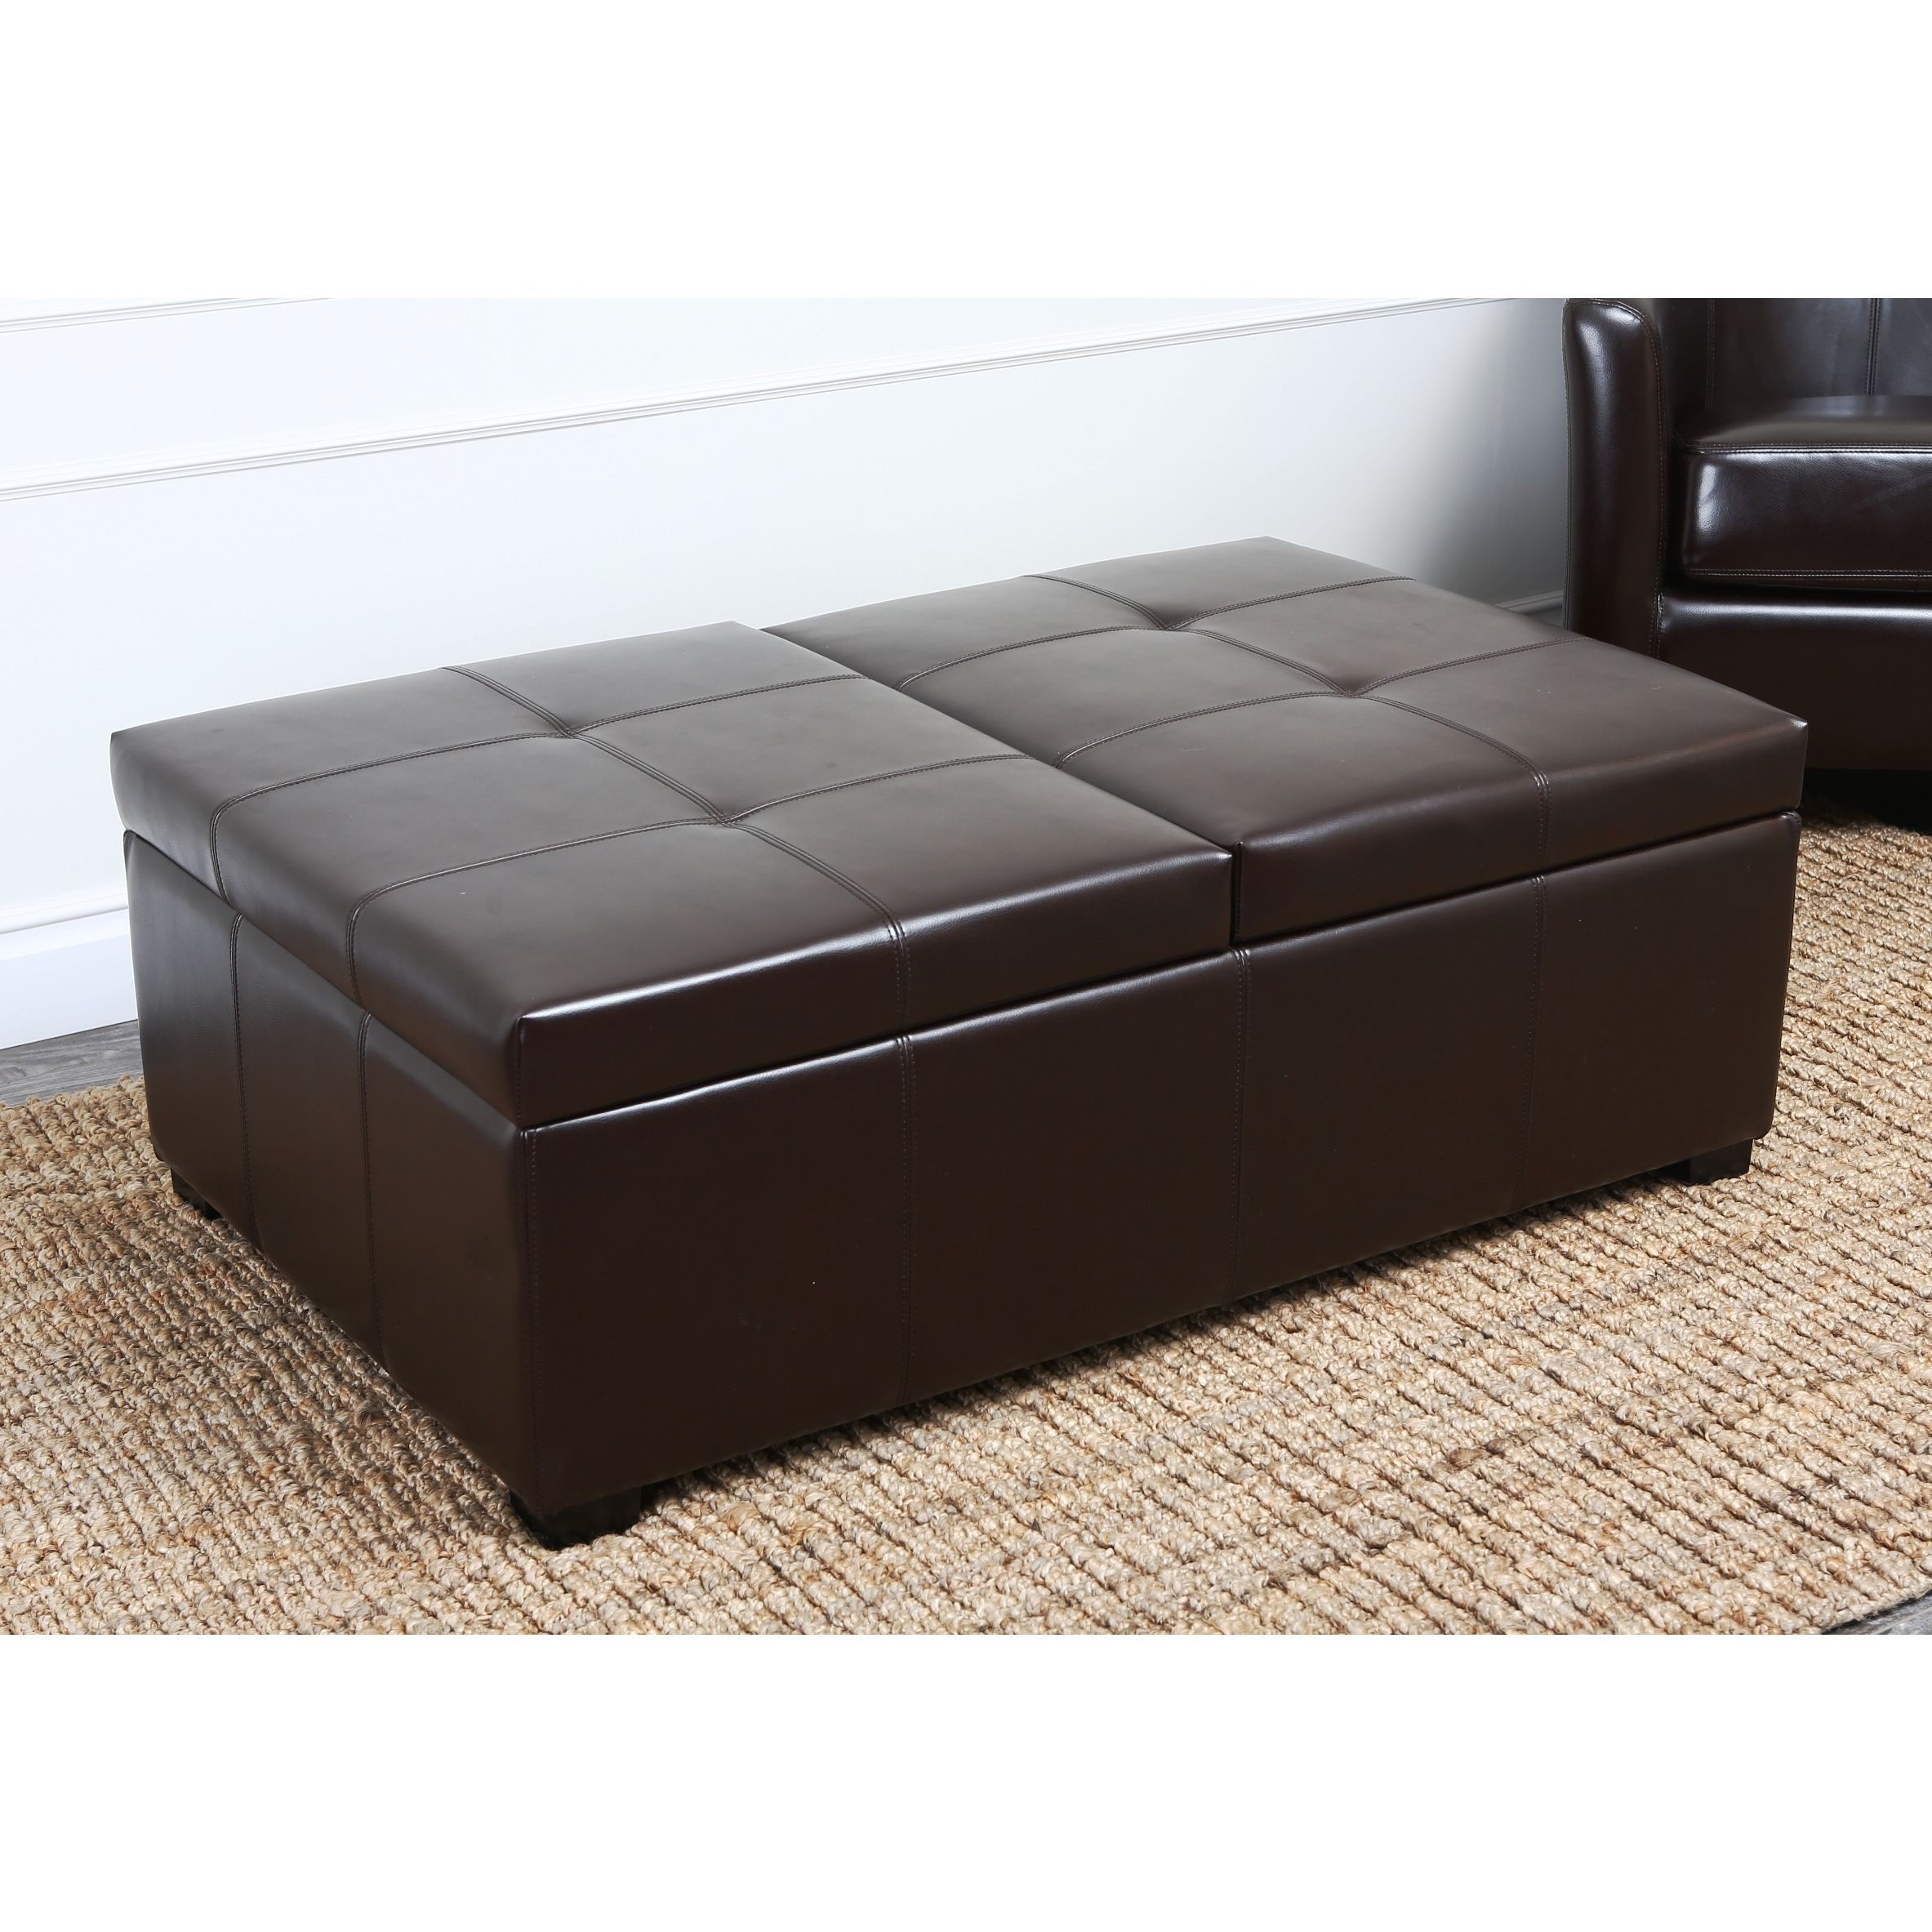 combining function with style this brown leather storage. Black Bedroom Furniture Sets. Home Design Ideas